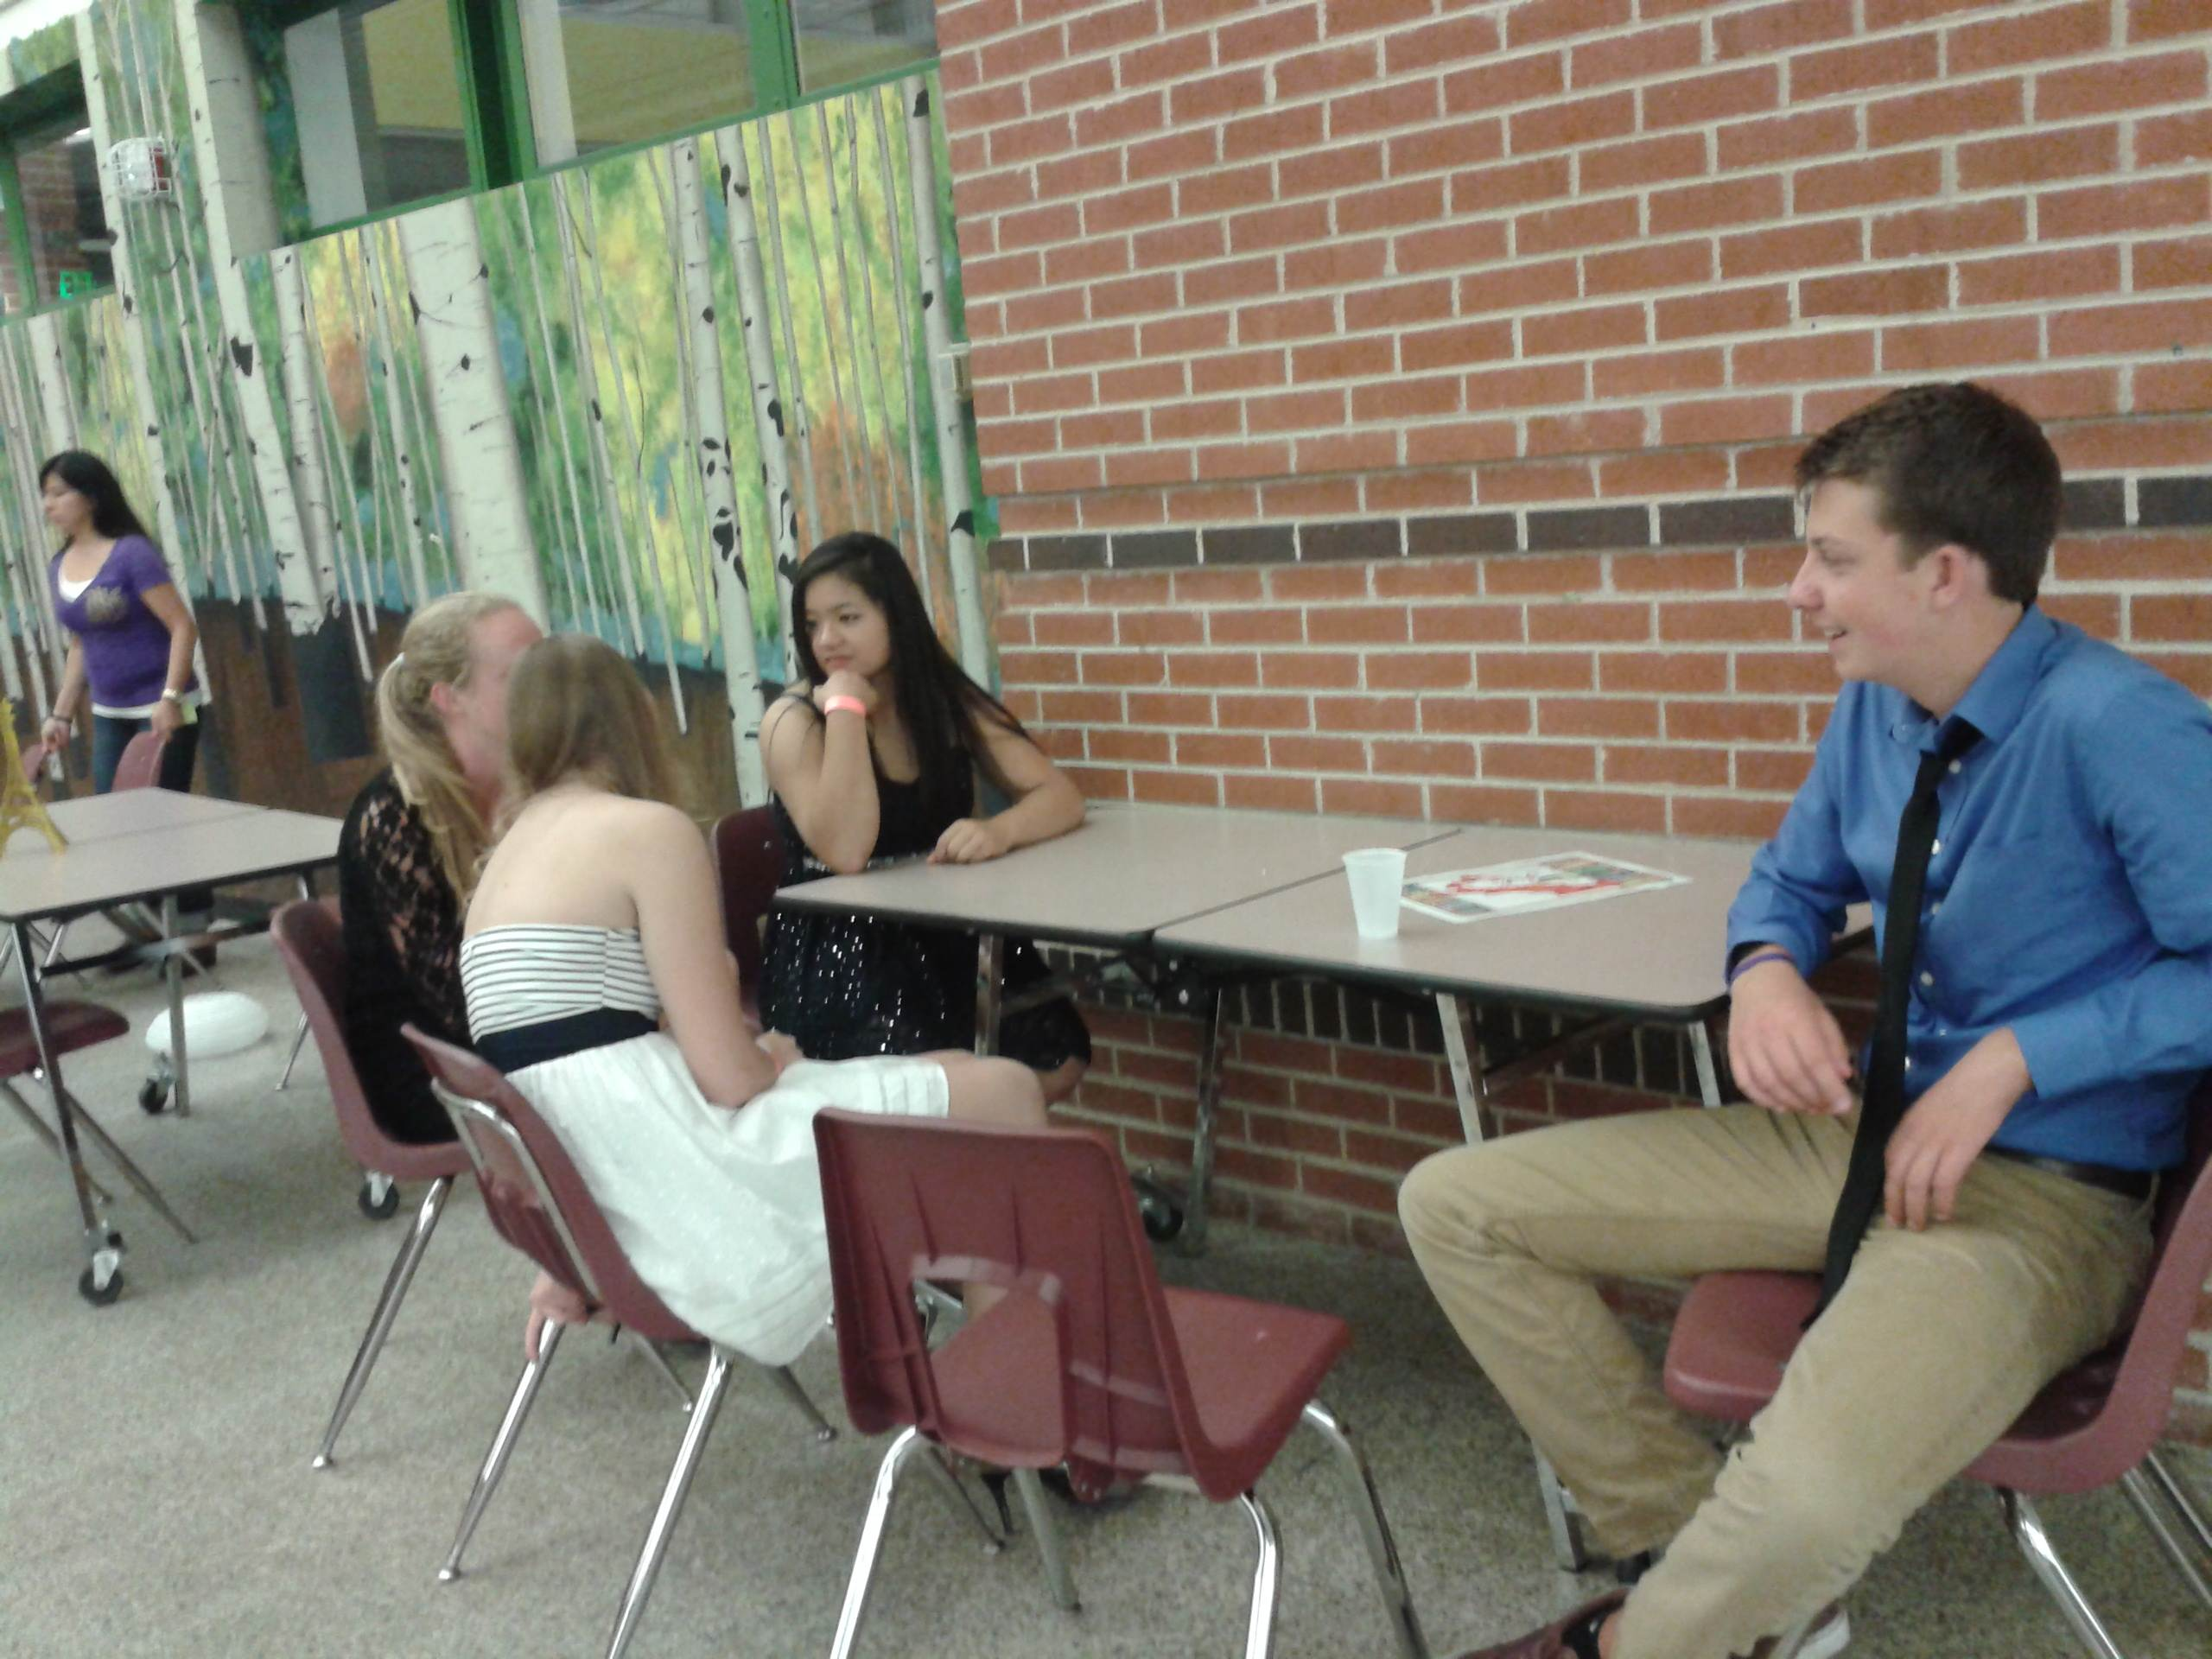 A group of seniors have a casual conversation, while enjoying the quiet of the Cafeteria.